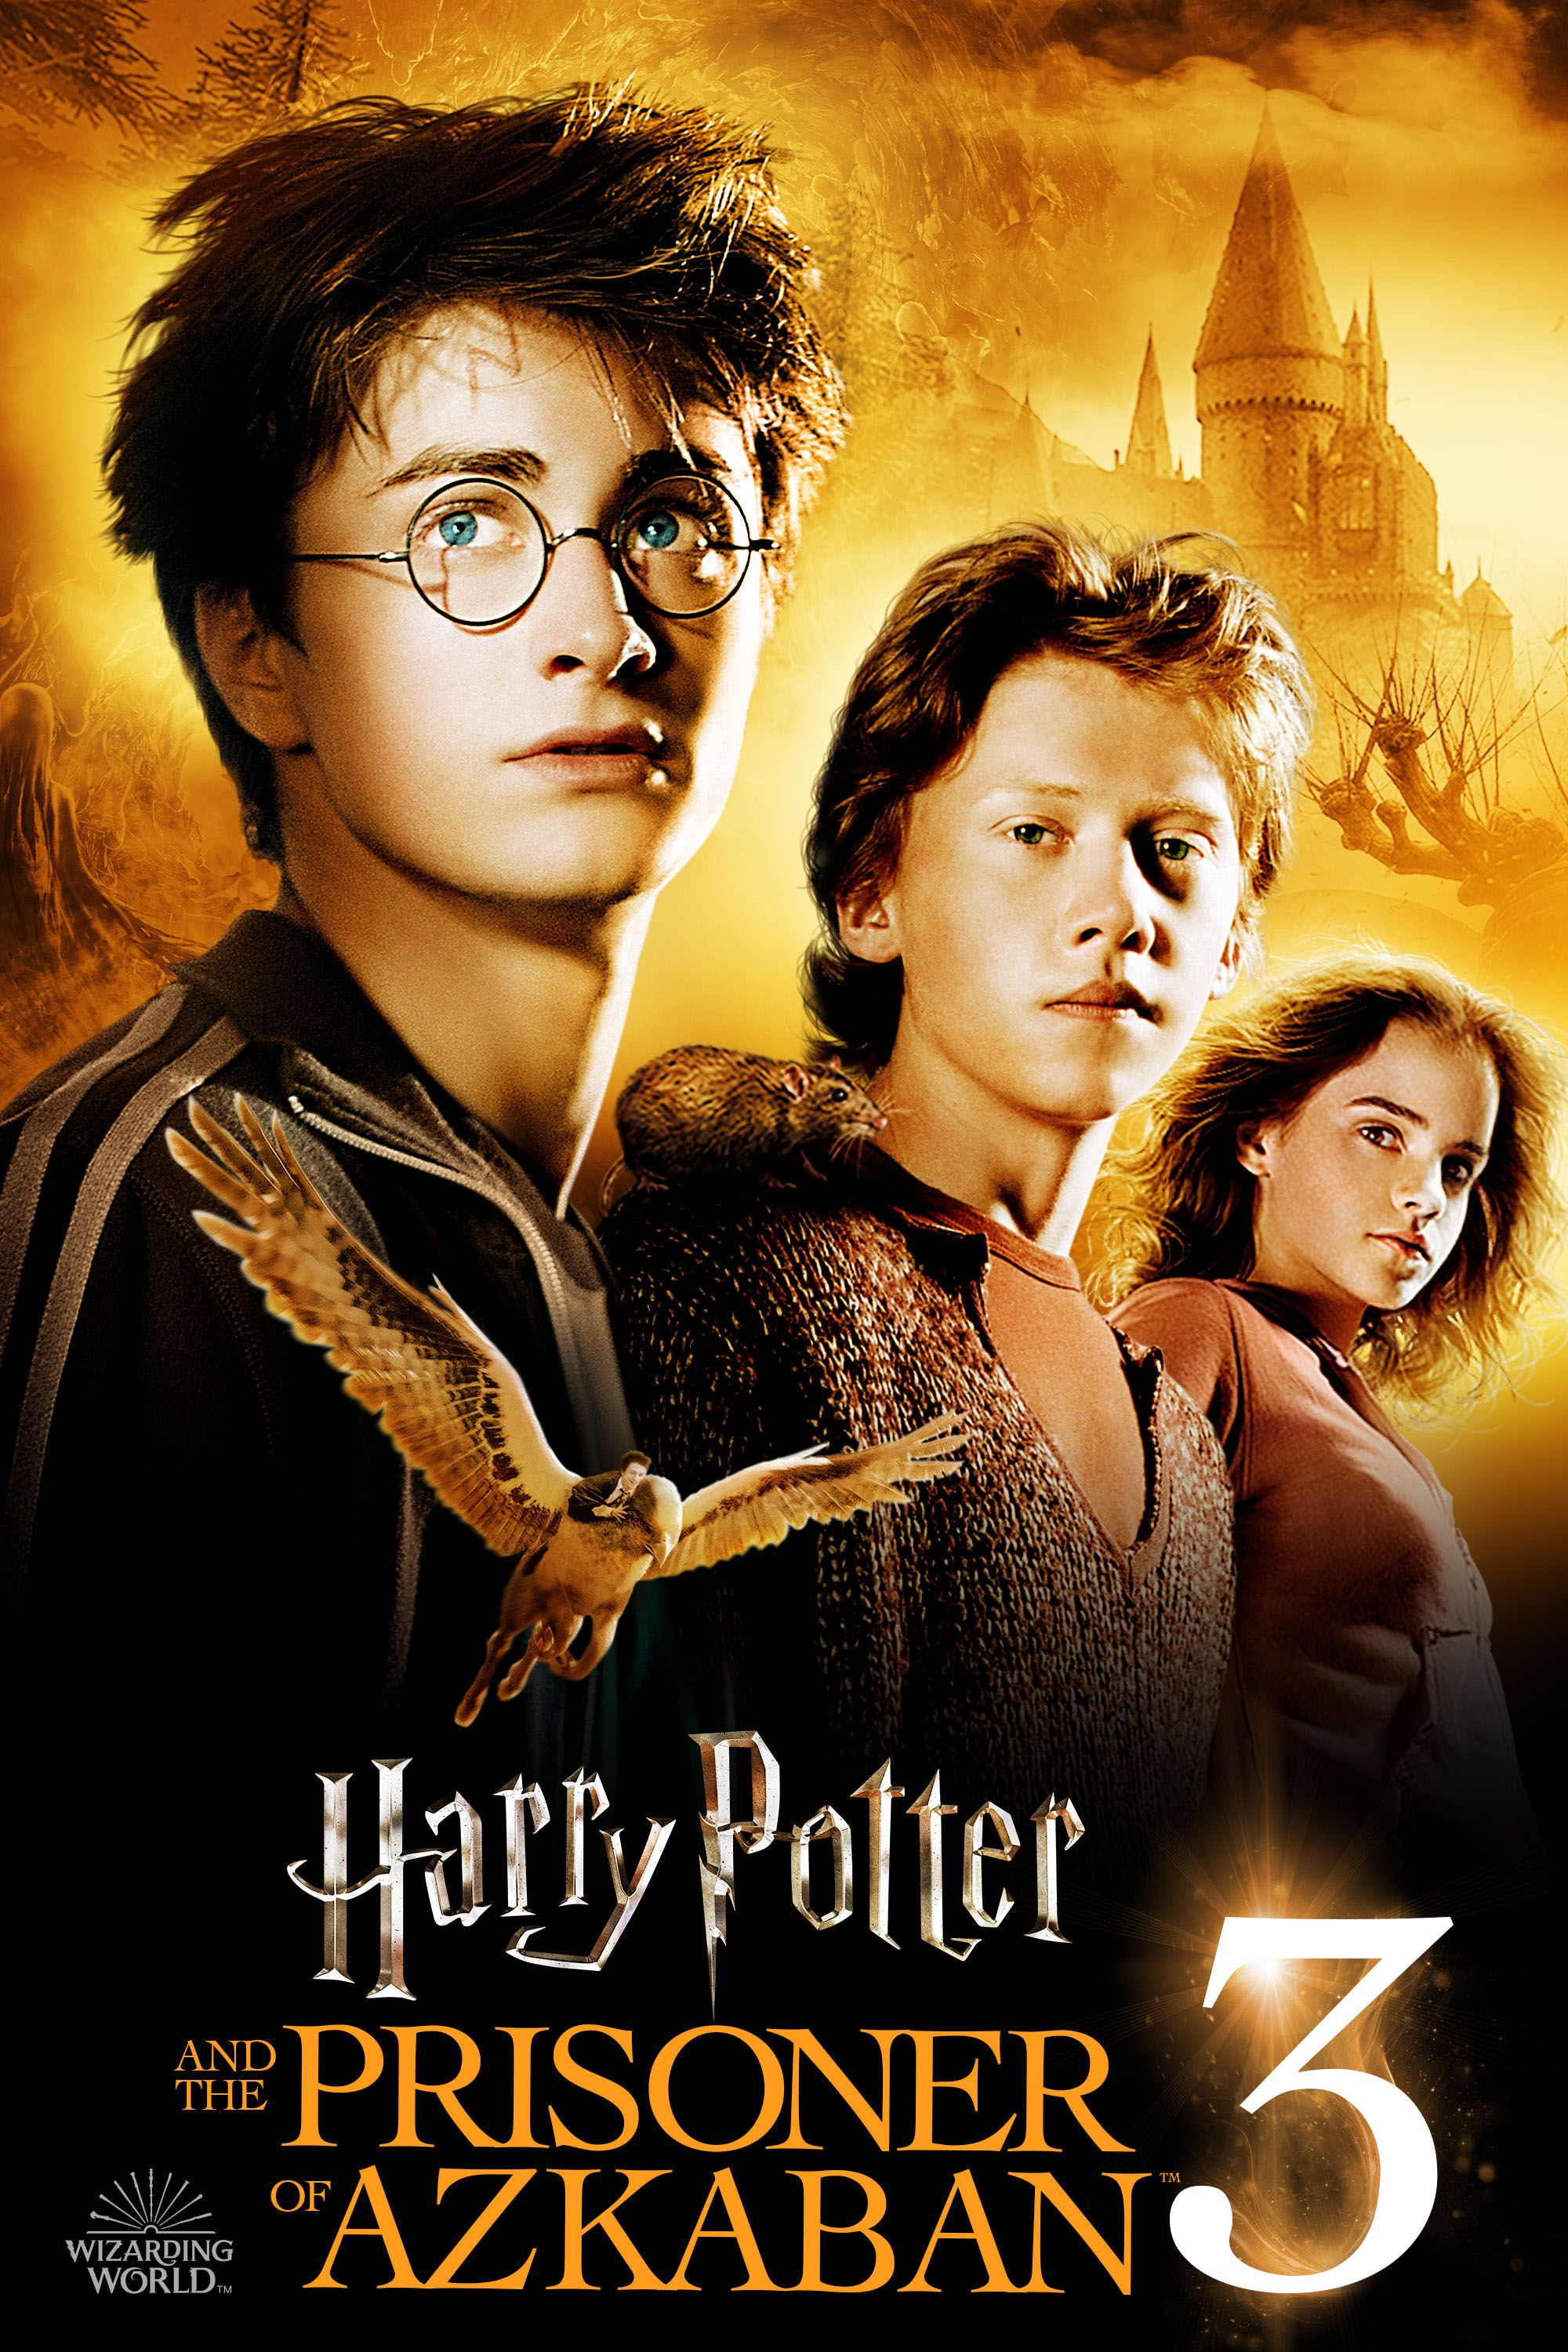 Download Harry Potter 3 Sub Indo : download, harry, potter, Harry, Potter, Prisoner, Azkaban, Movie, Movies, Anywhere